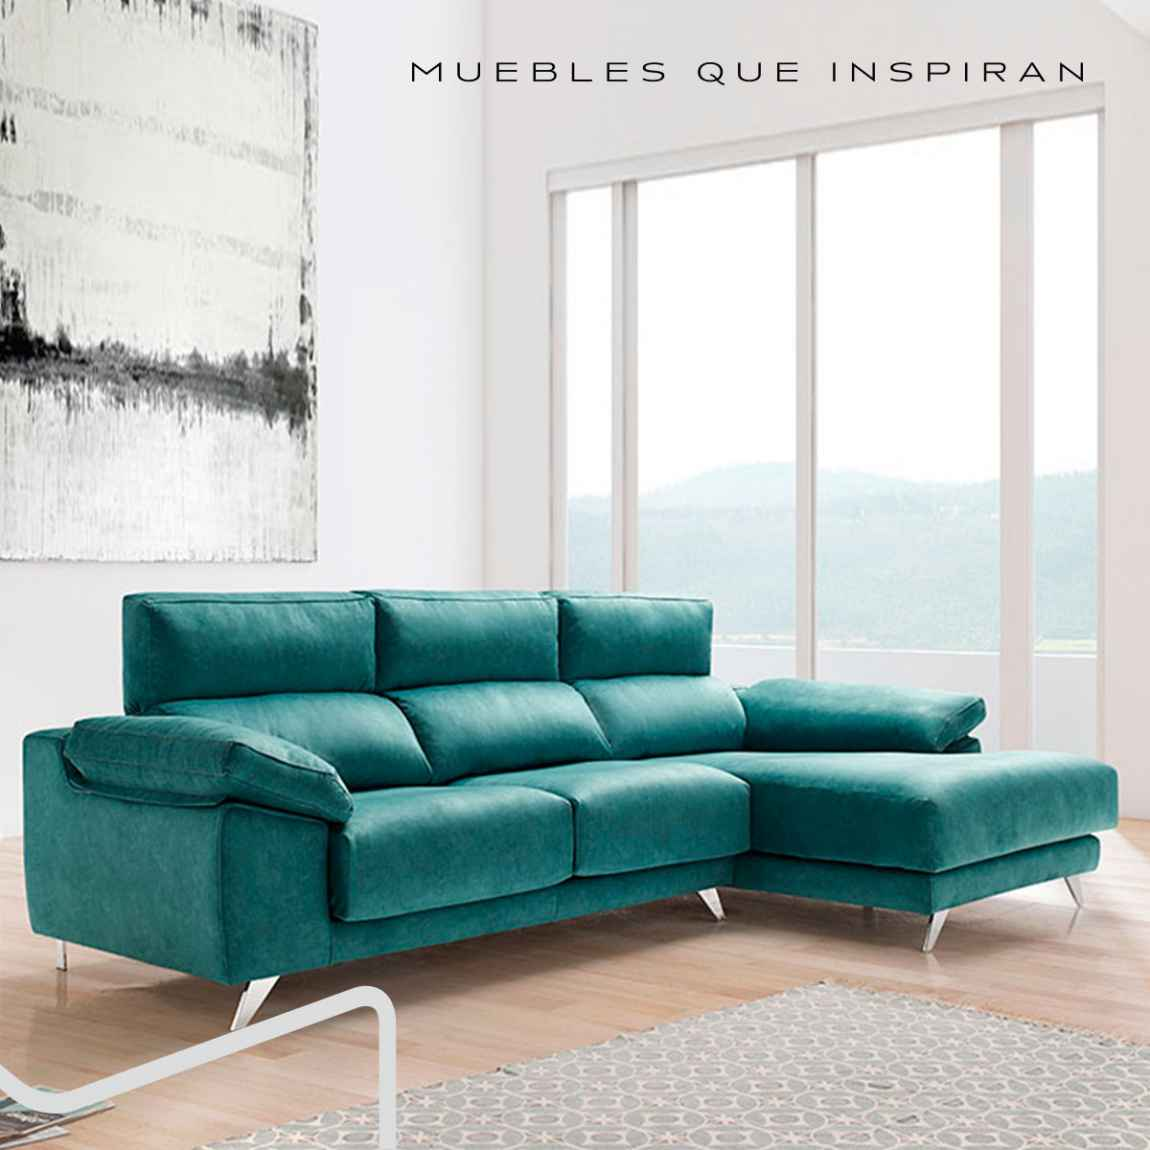 CHAISE LONGUE OCÉANO Mobles Rossi